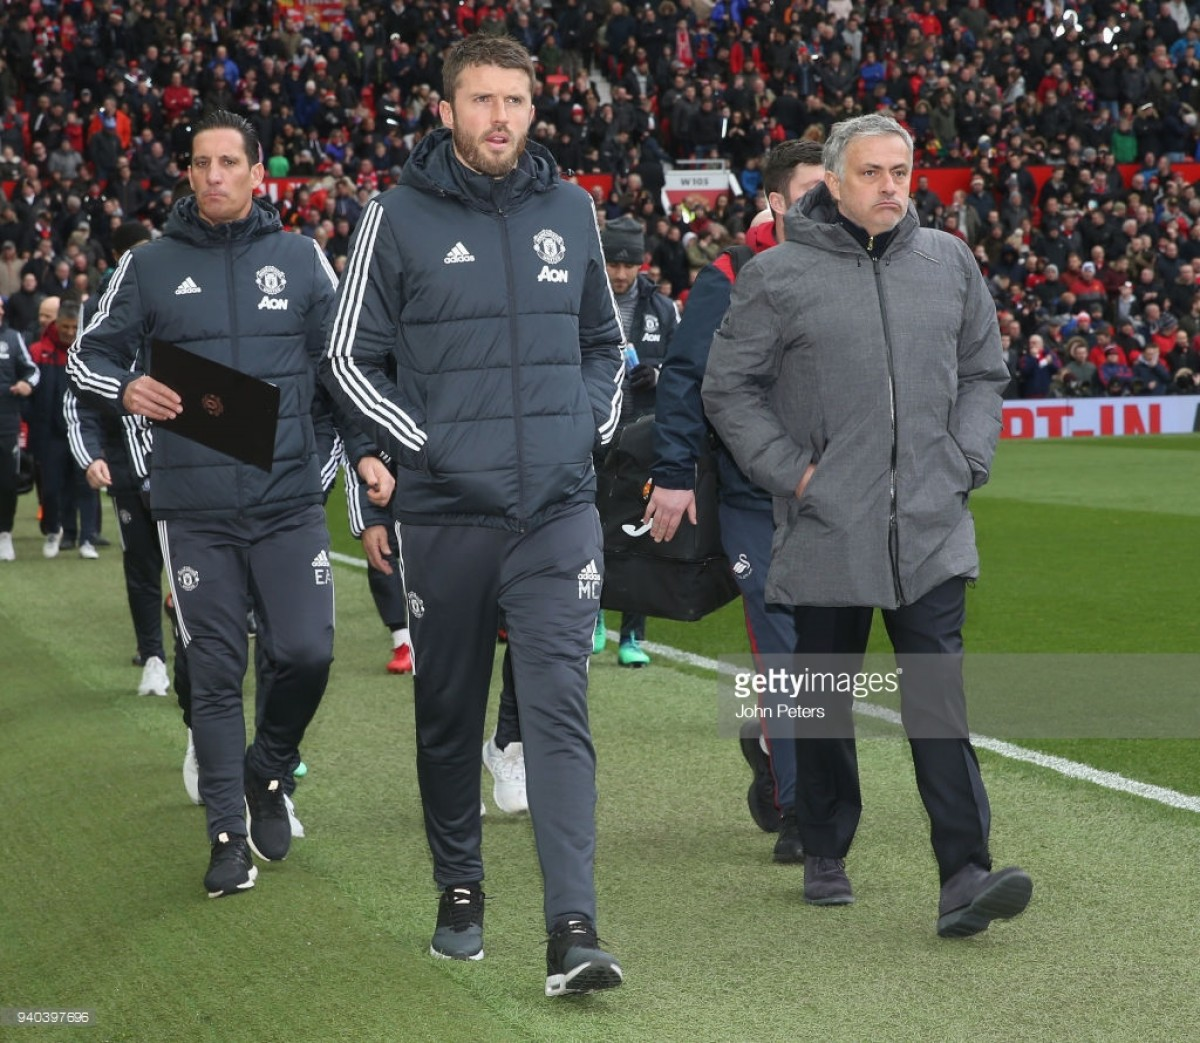 Michael Carrick outlines intentions to become a manager after wise words to Pogba